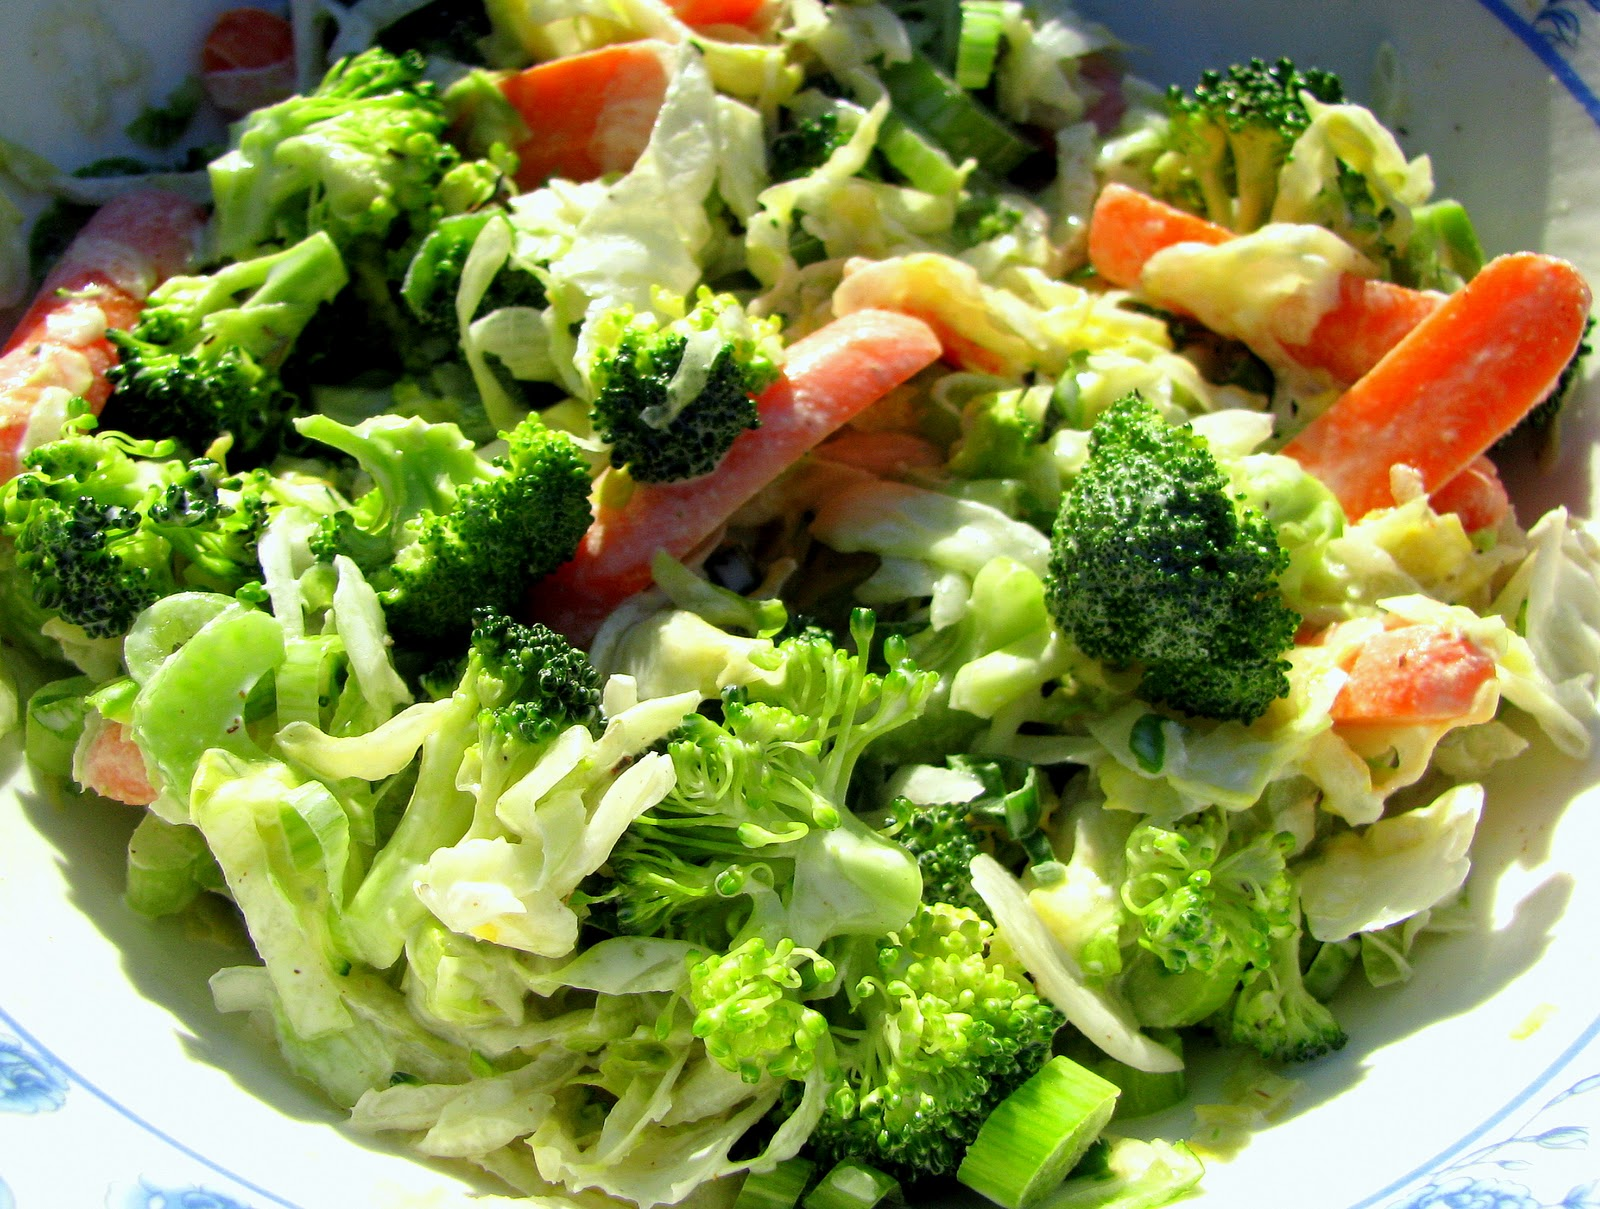 ensalada broccoli salad